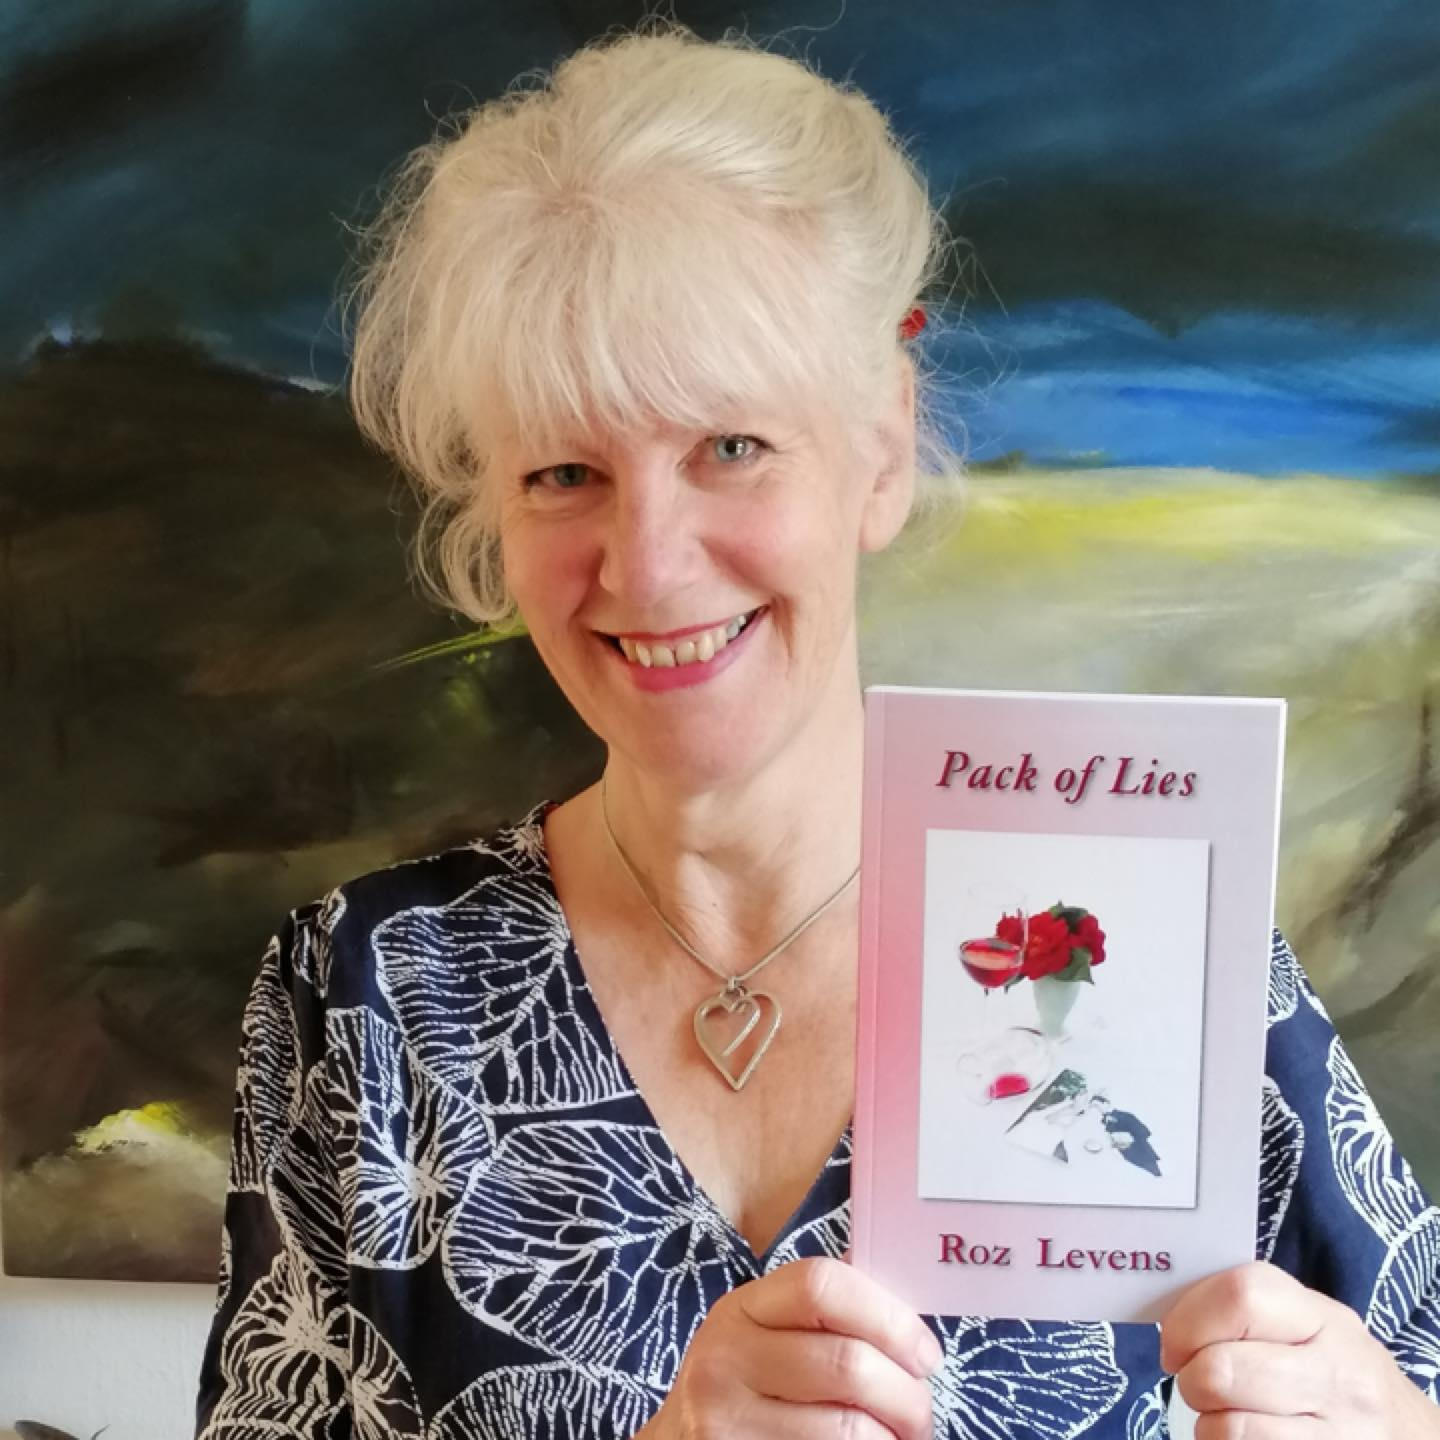 Roz Levens with Pack of Lies